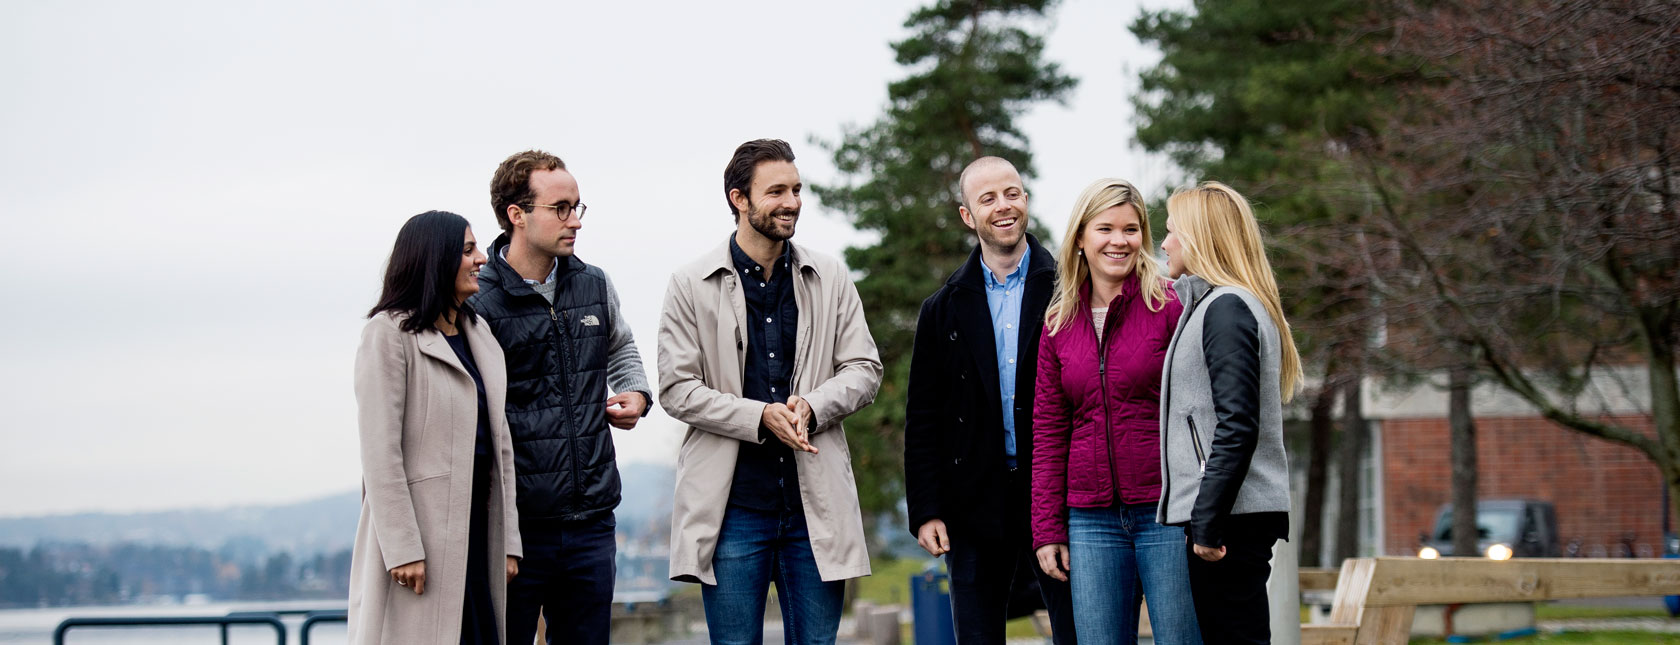 Meet our people: colleagues by the fjord at DNV GL head office, Oslo